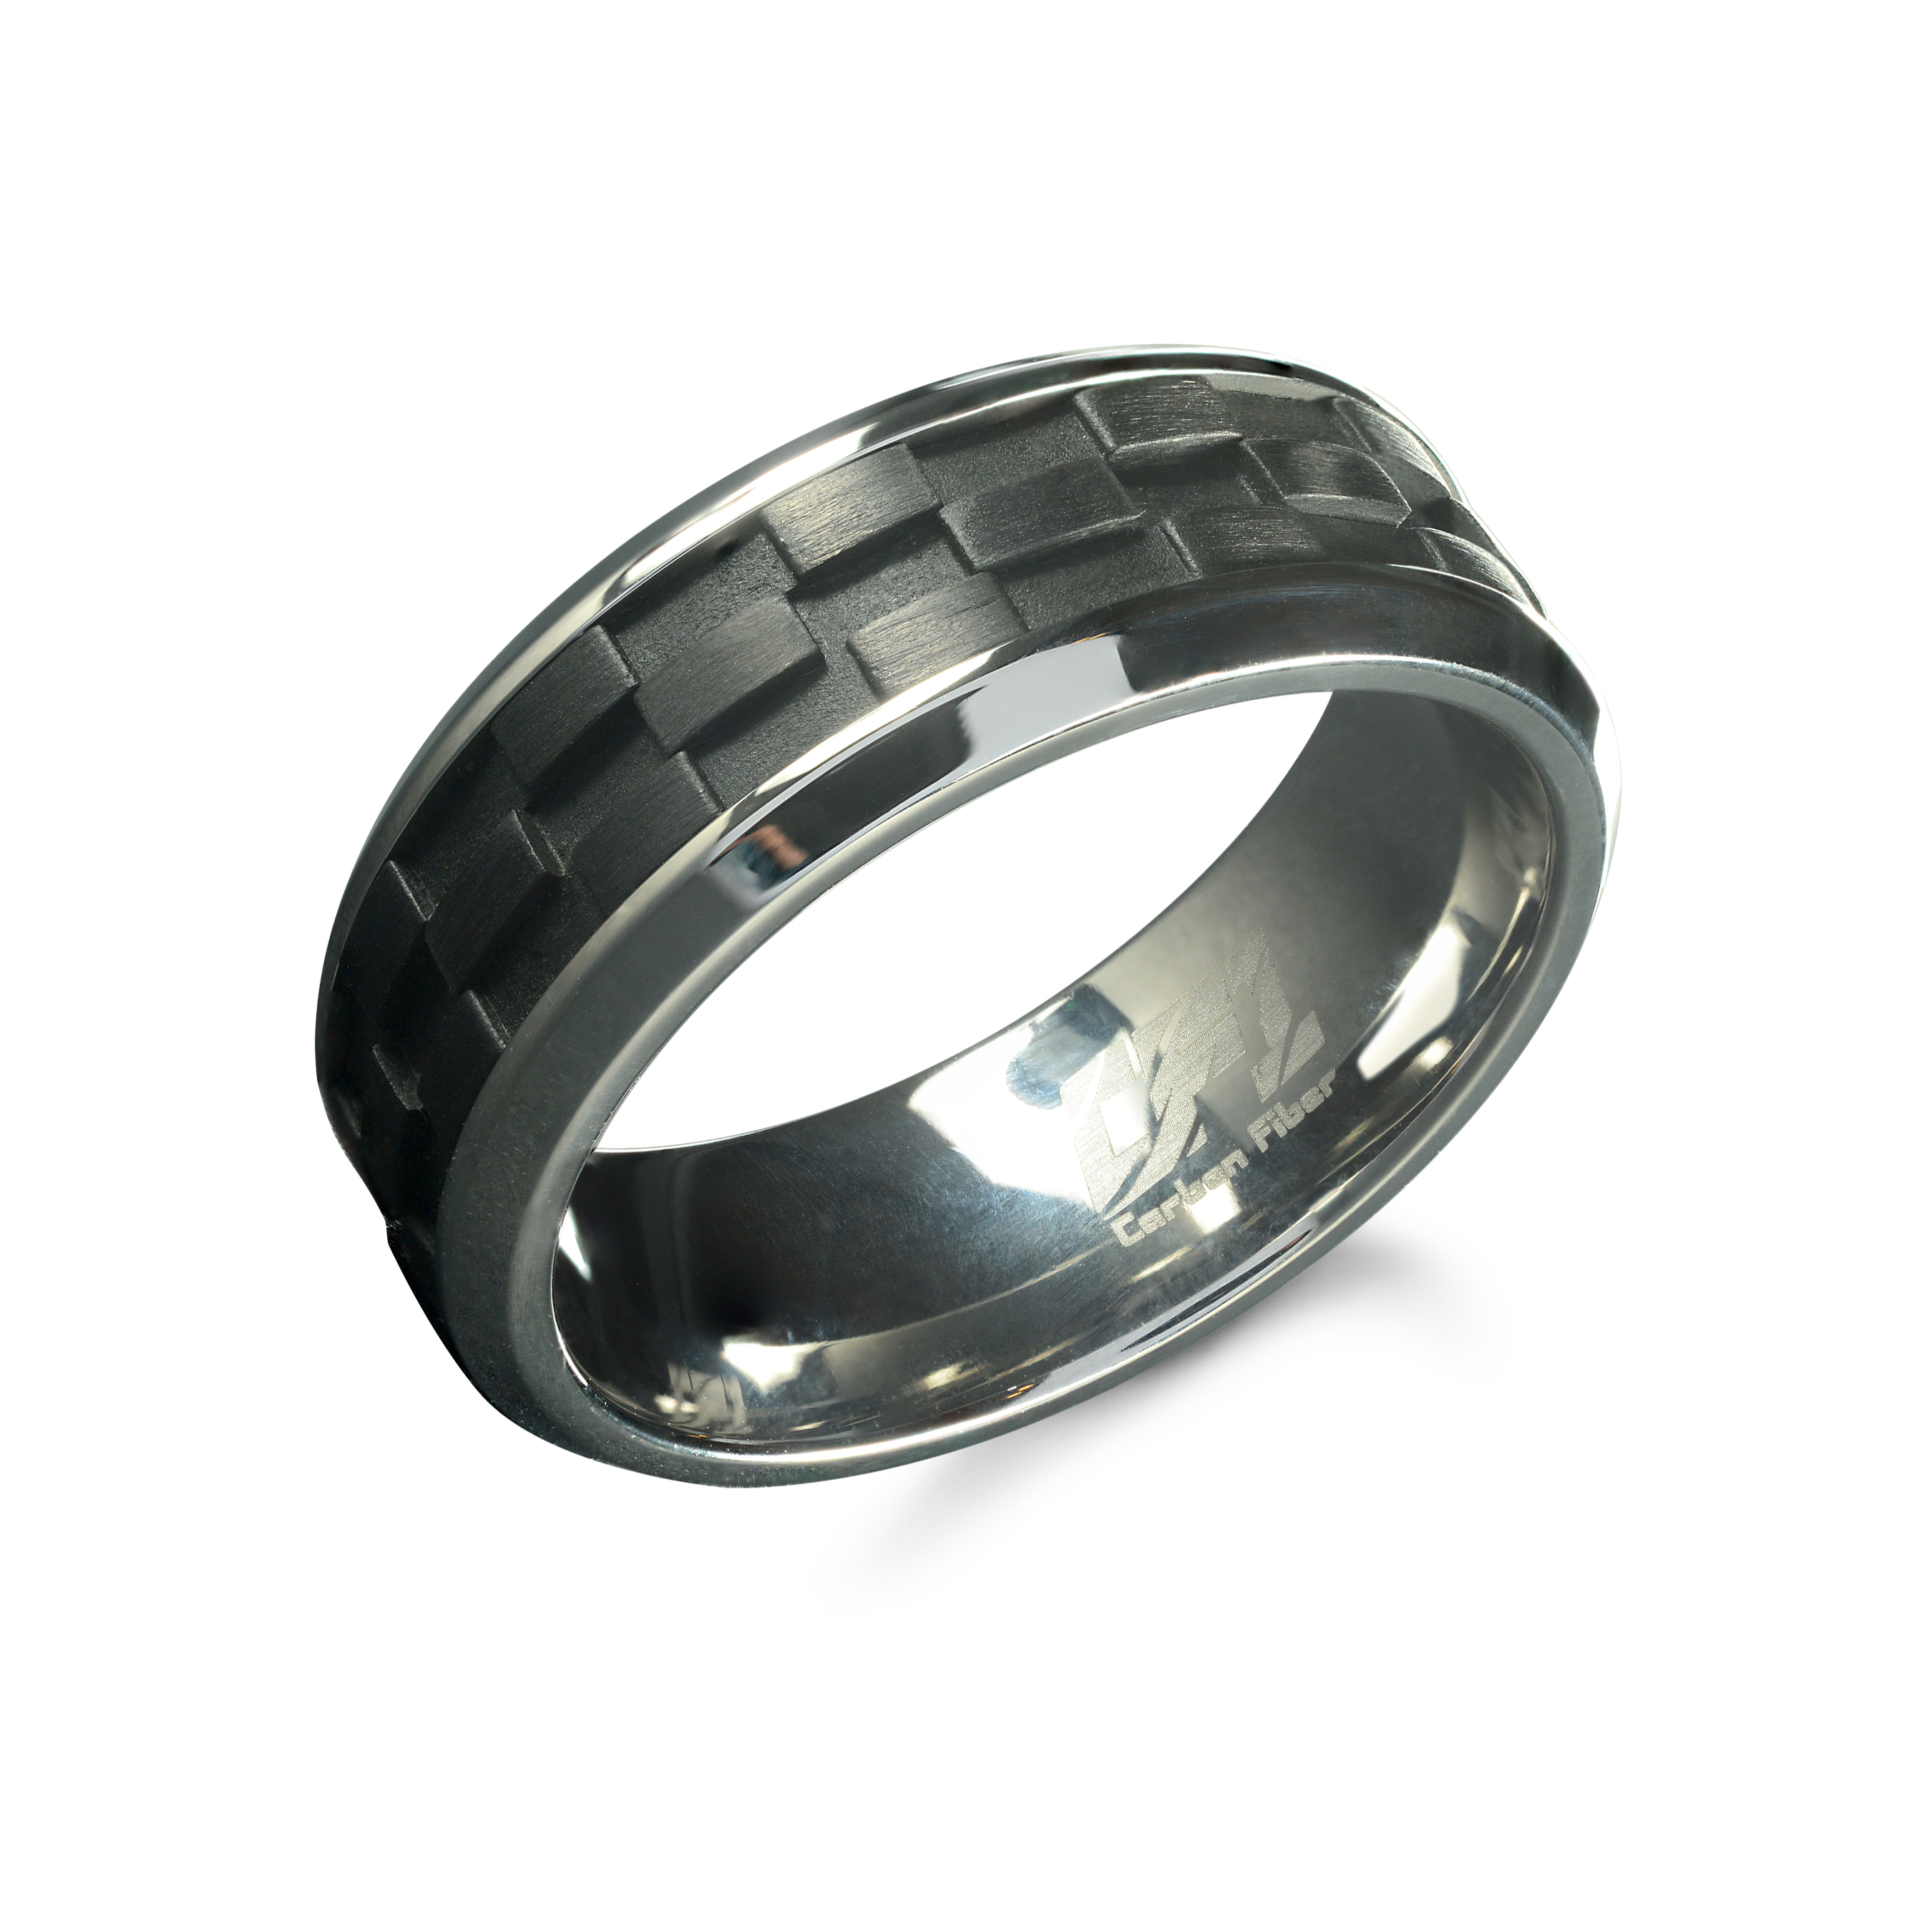 store by celje s steel asp ring atlantis zlatarna products rings